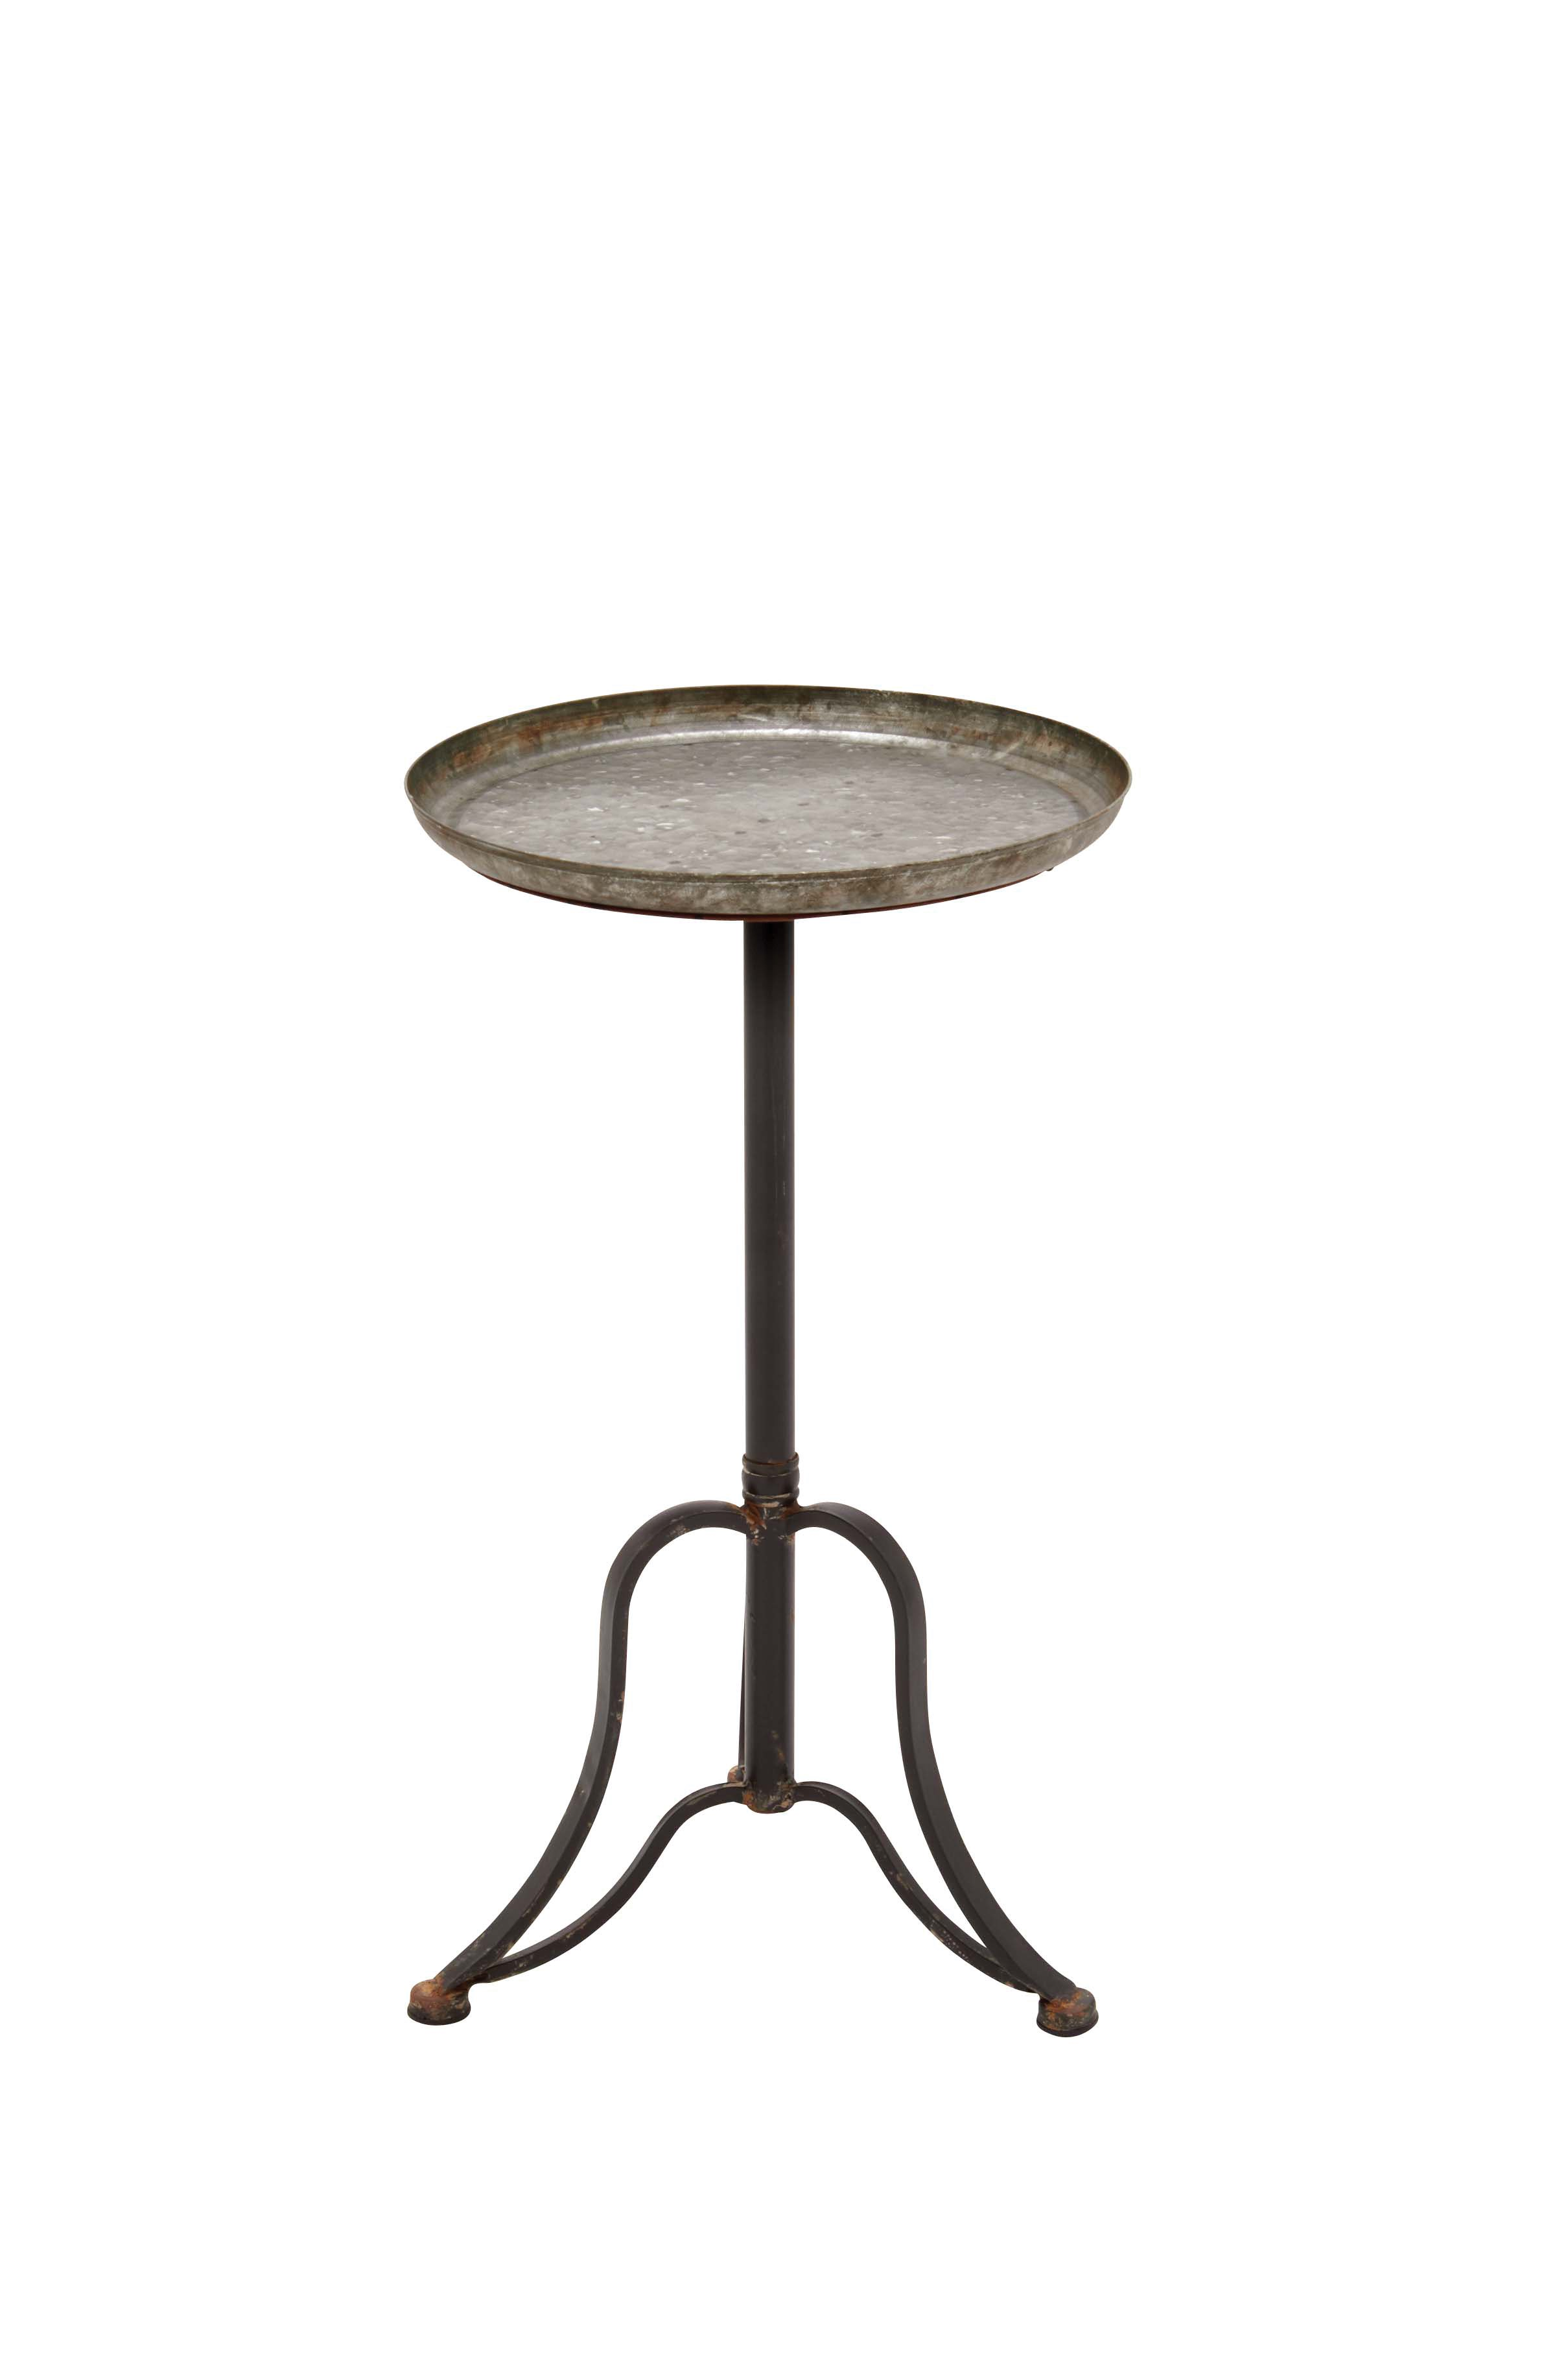 Decmode 27 Inch Farmhouse Round Metal Tray Table, Nickel